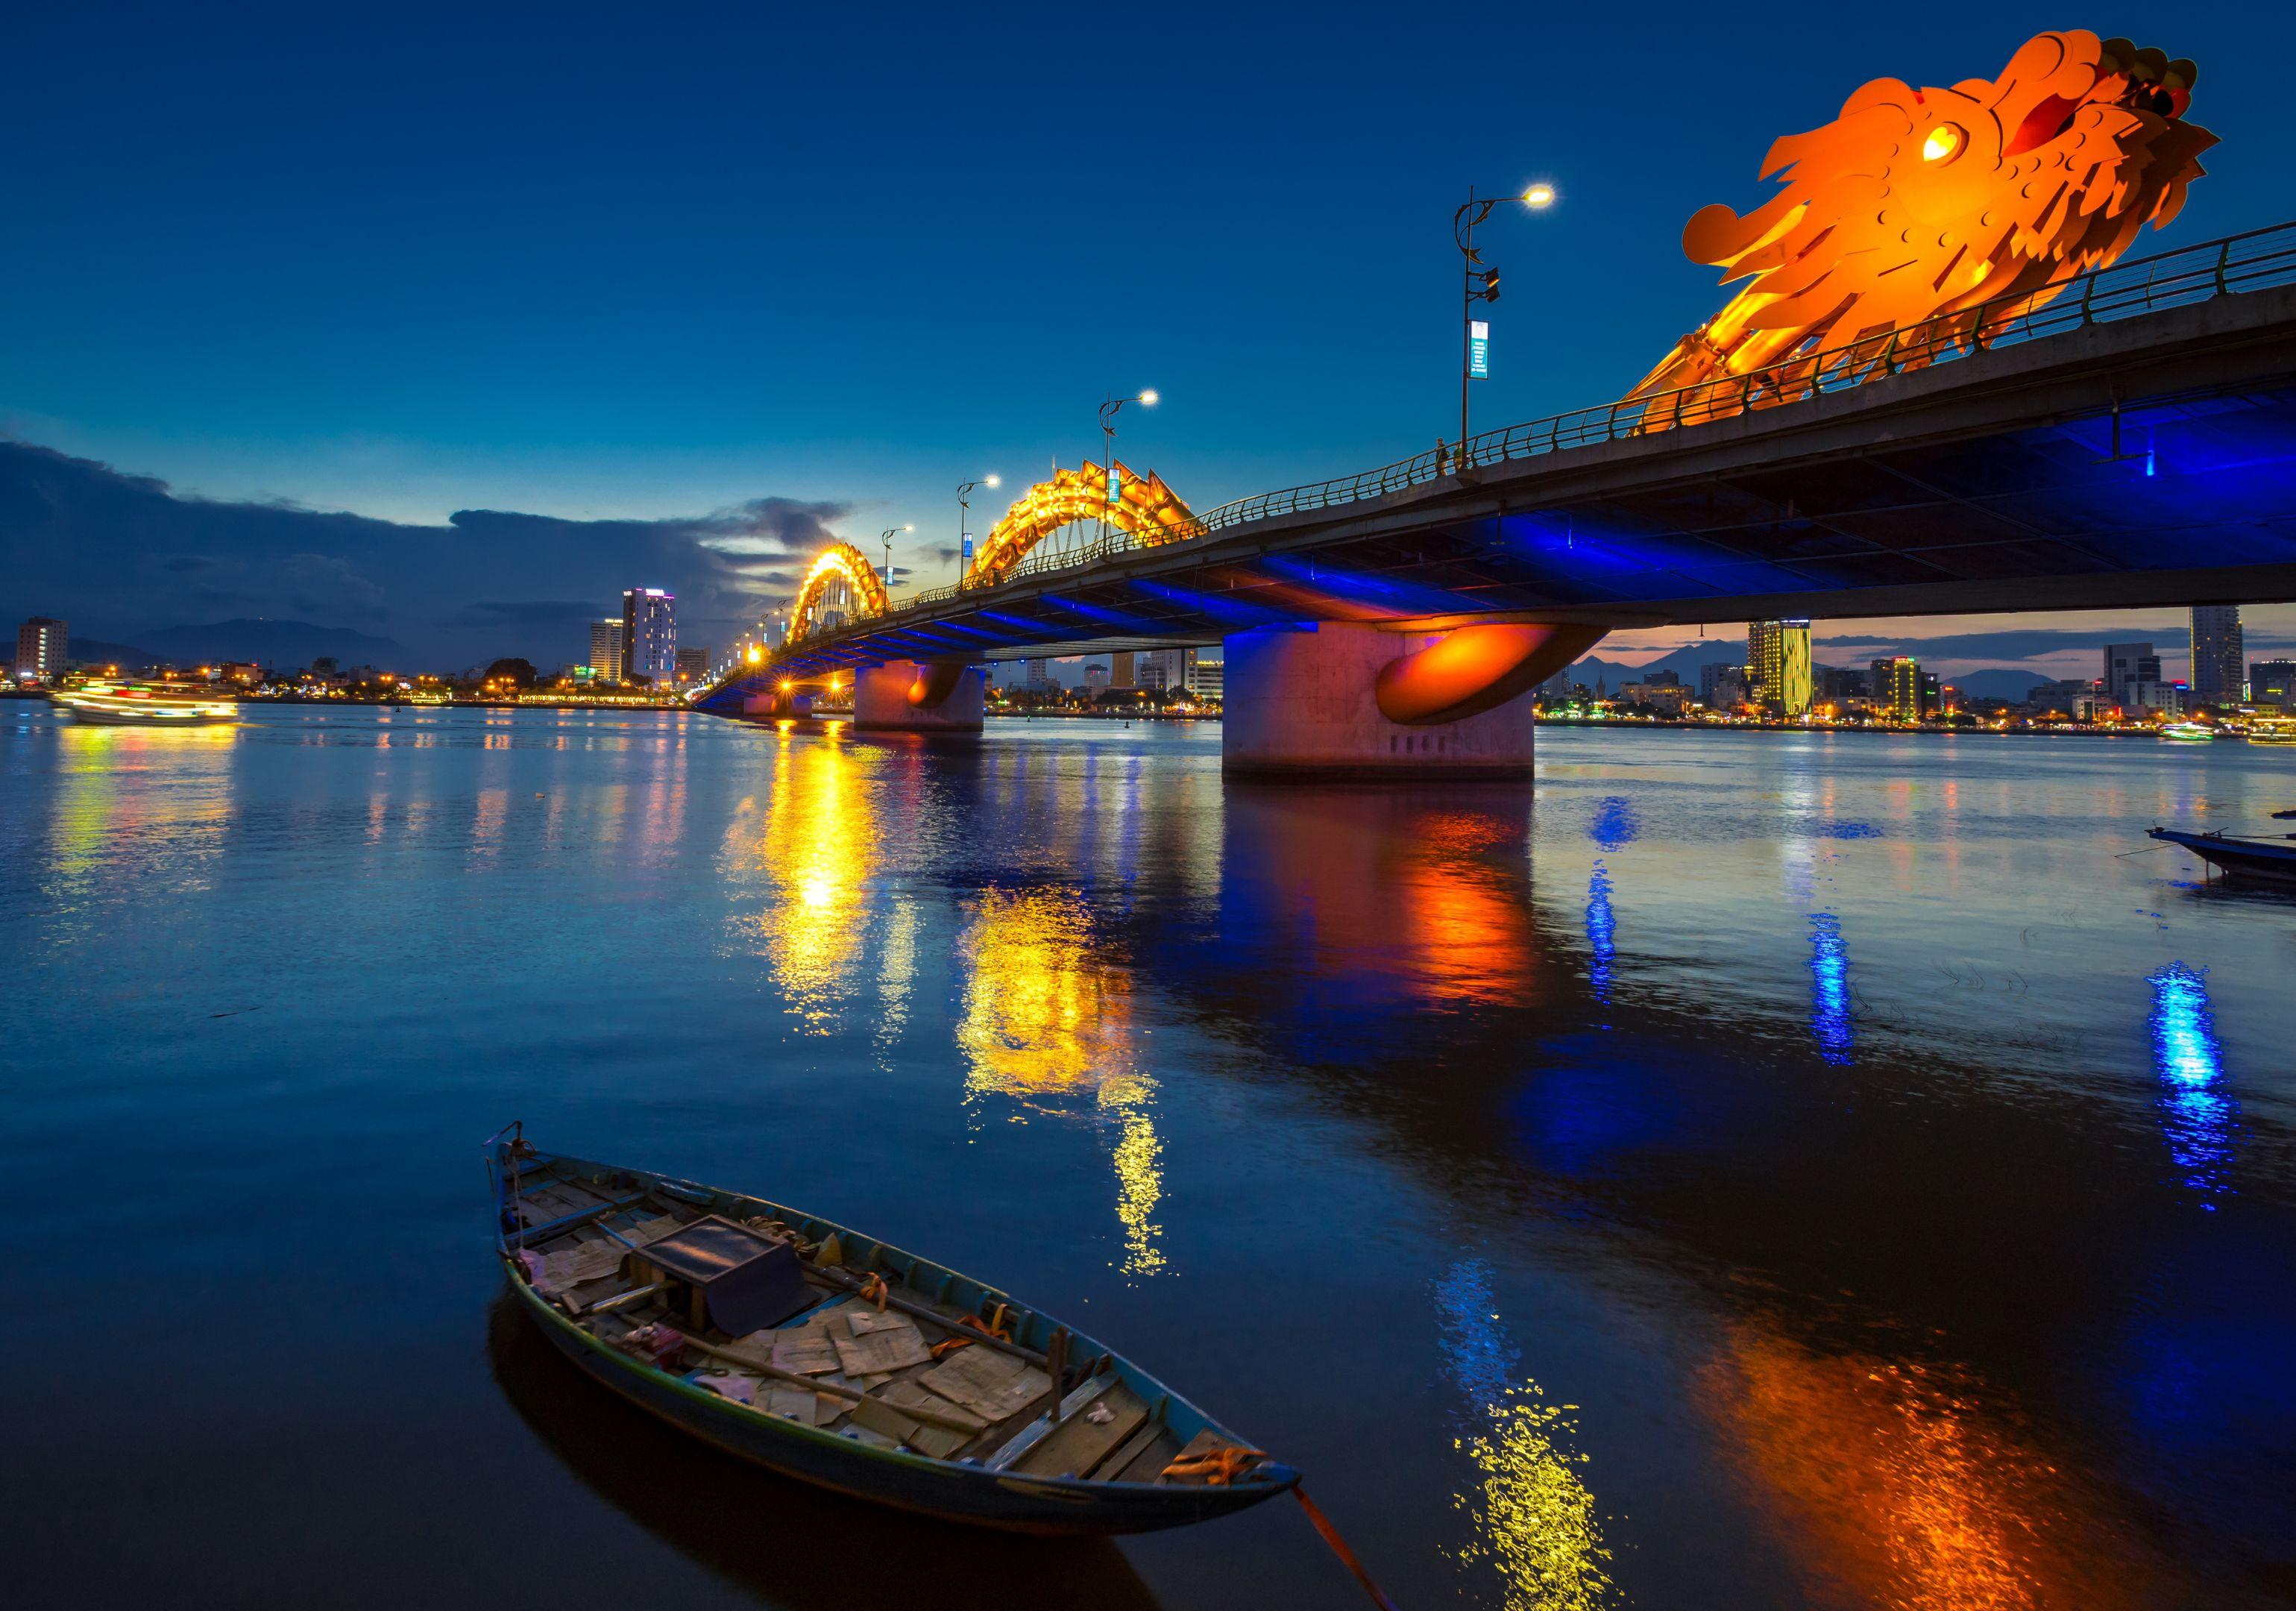 Dragon Bridge in Danang at night, with reflections on the river.